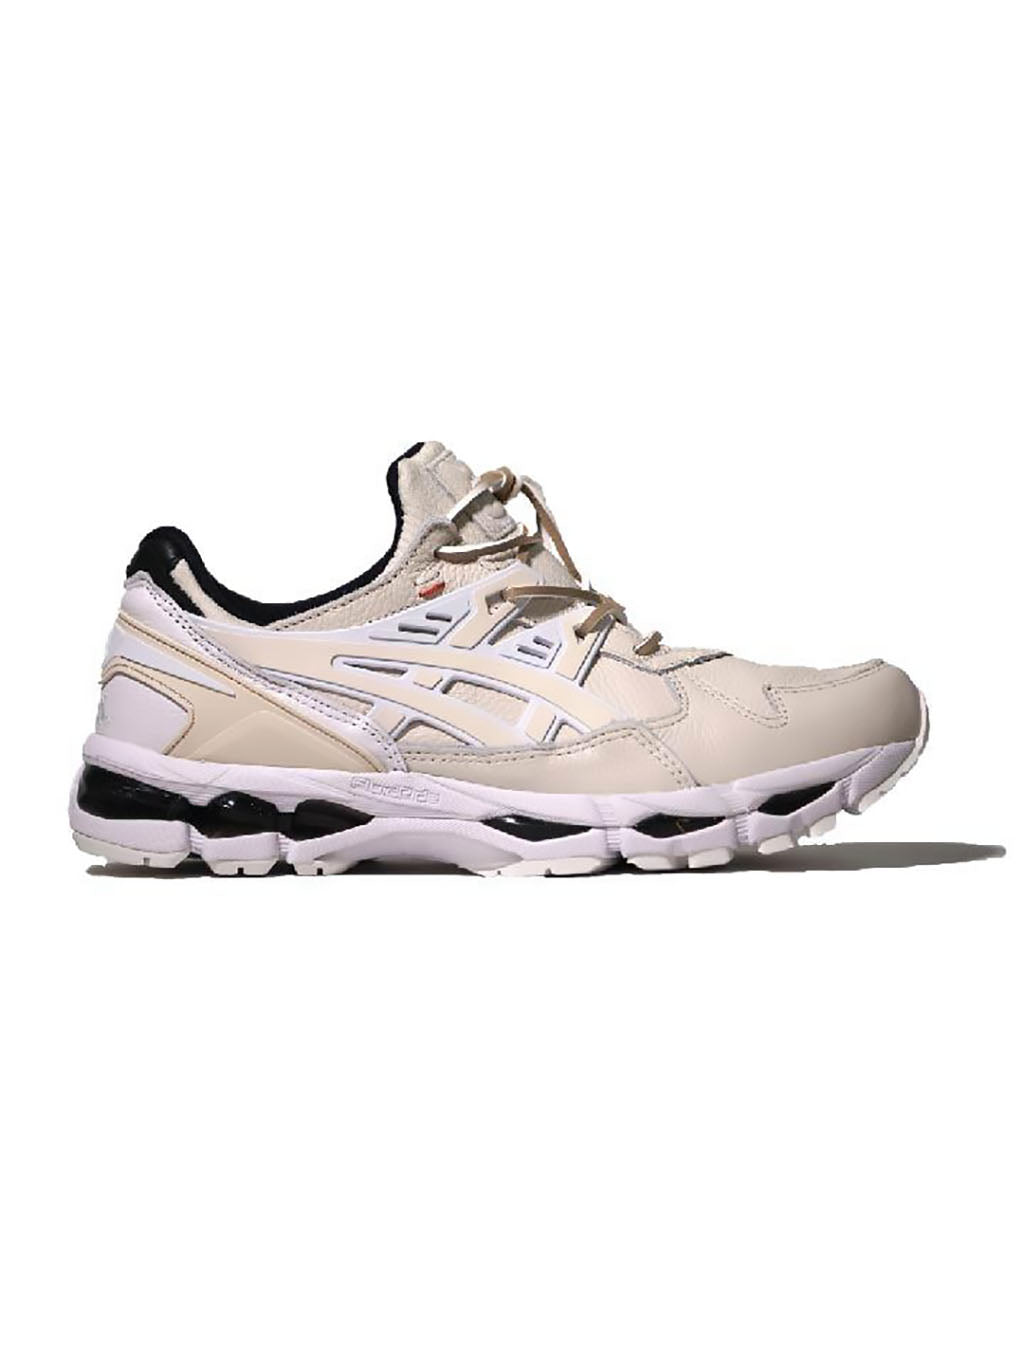 Pink Gel-Kayano Trainer 21 Sneakers